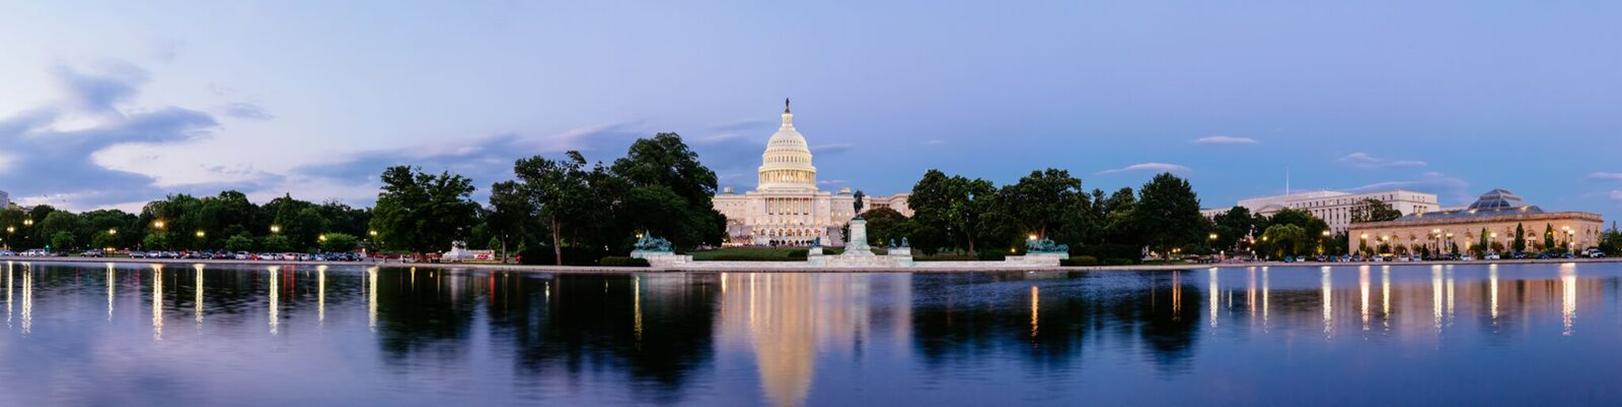 washington_dc_tourism